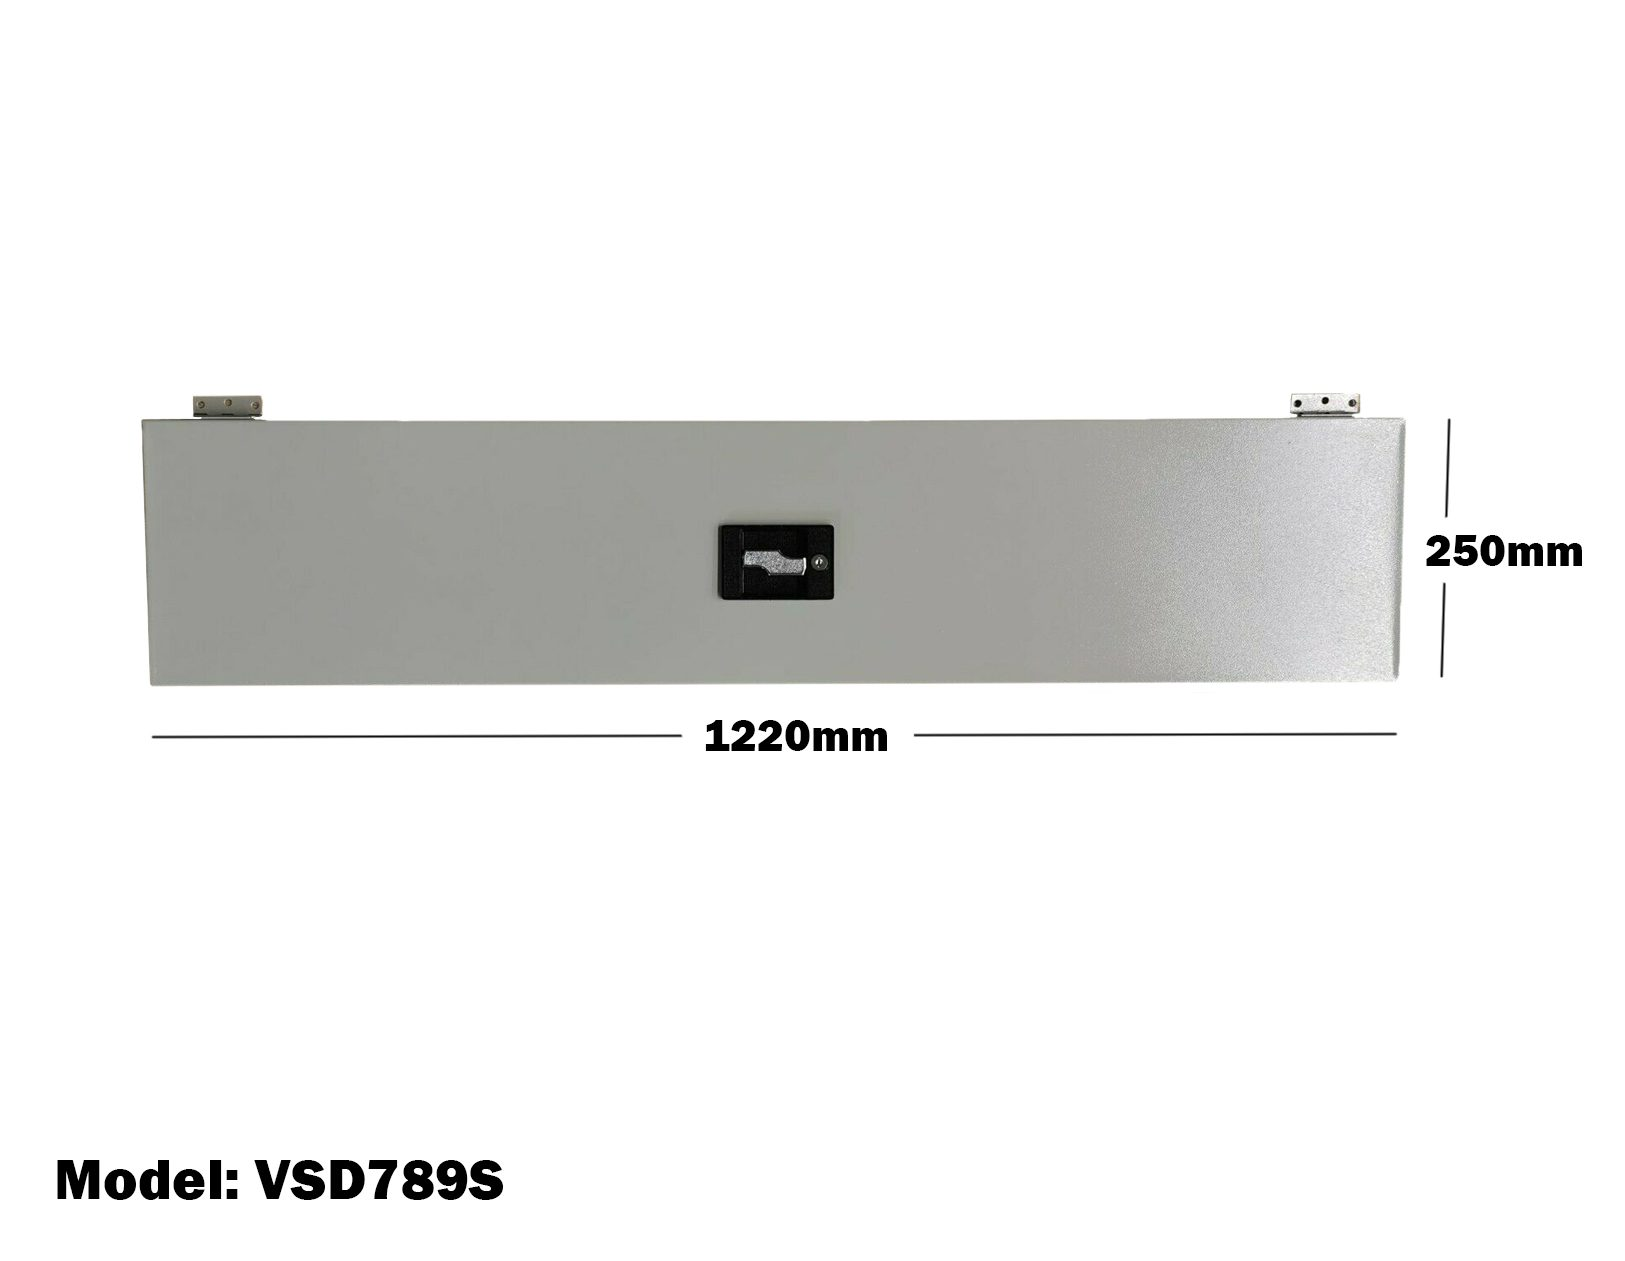 Van Shelving 1220mm(L) x 250mm(H) Lockable Door Single Tier For Van Shelving System VSD789S